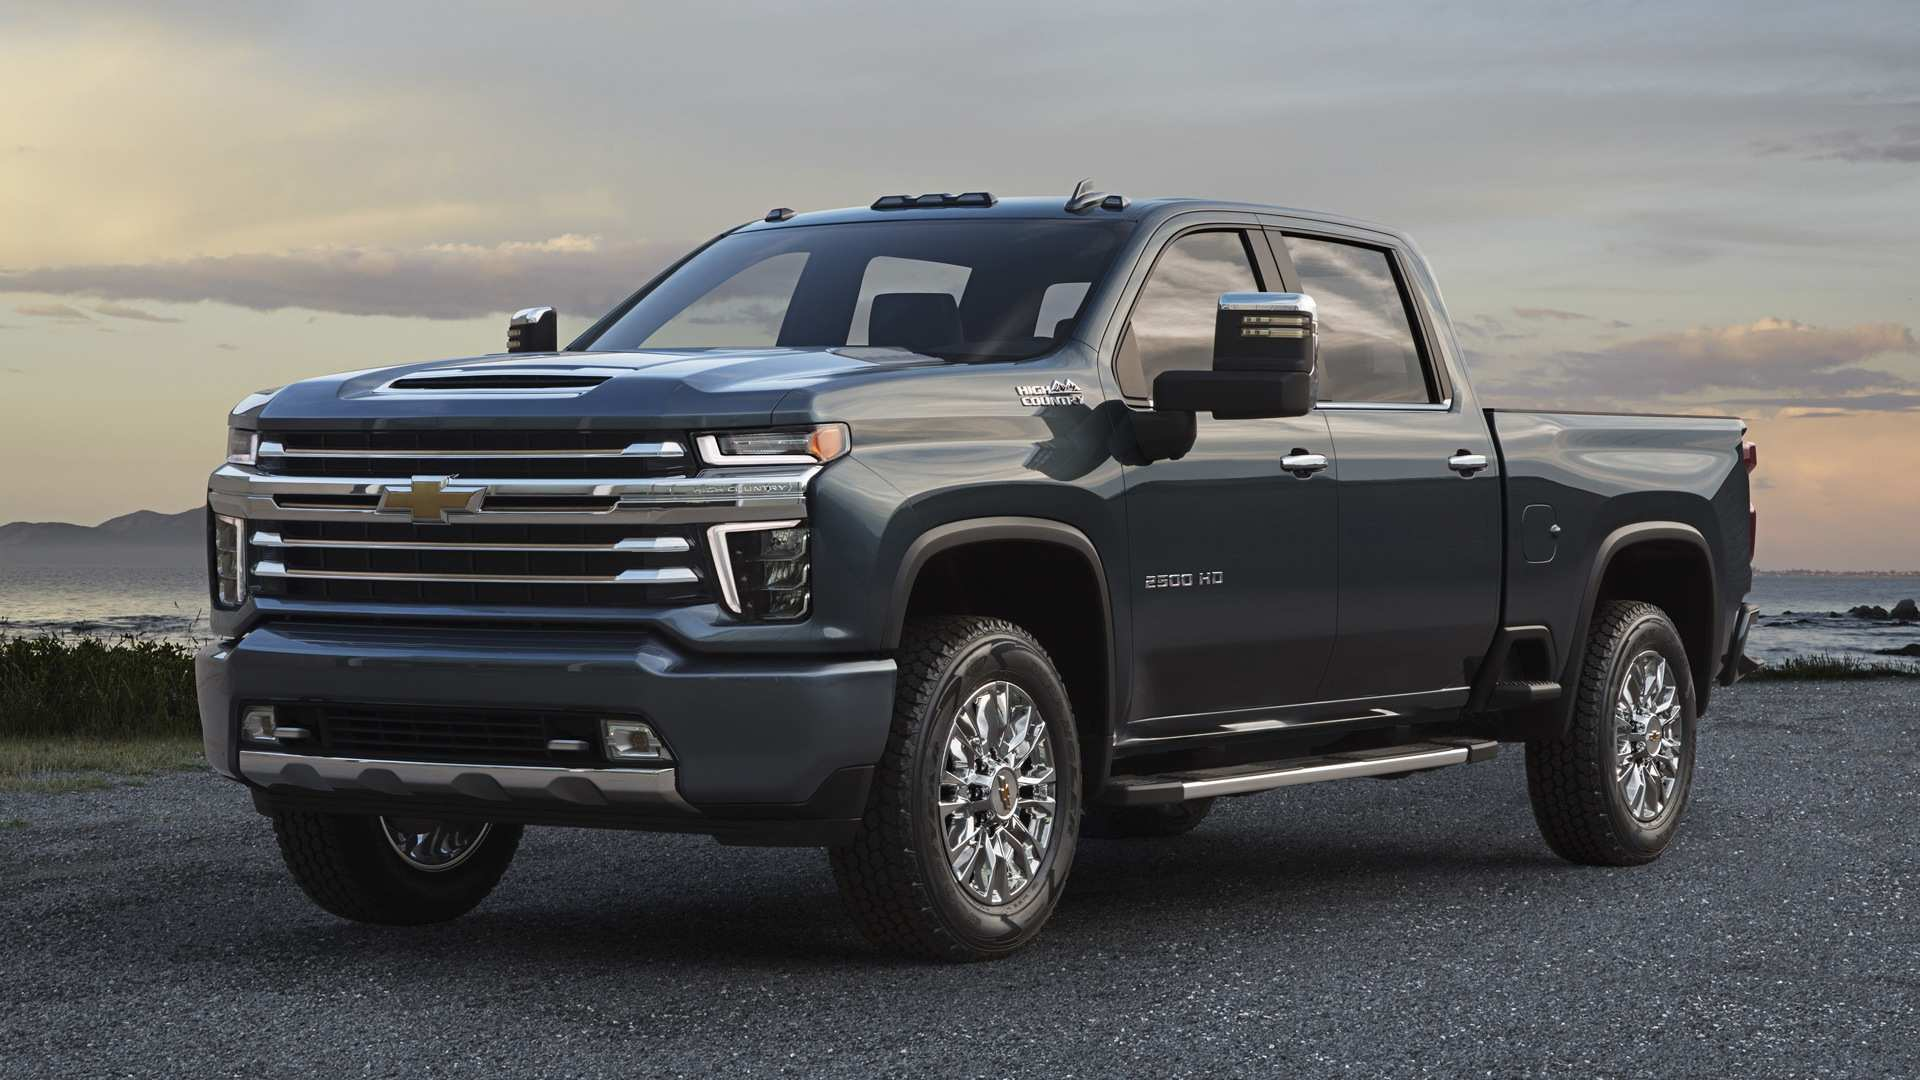 21 Concept of 2020 Chevy Silverado 1500 2500 Performance for 2020 Chevy Silverado 1500 2500